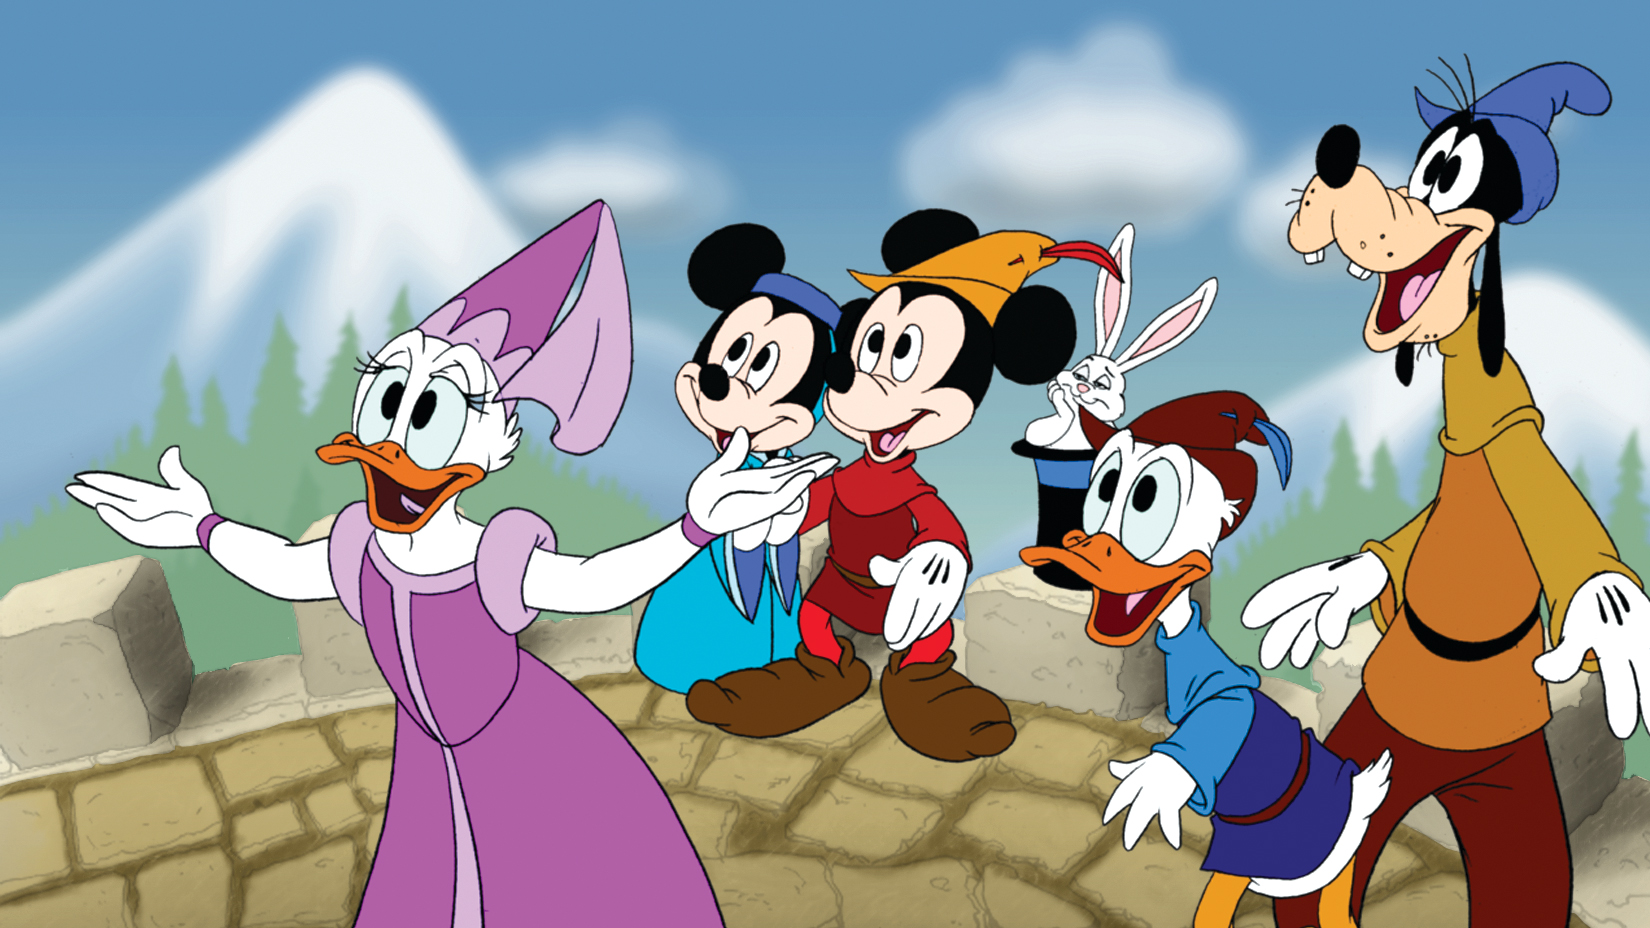 Solve the mysterious enchantment in Typelandia. Help Mickey's friends make it to the Palace.